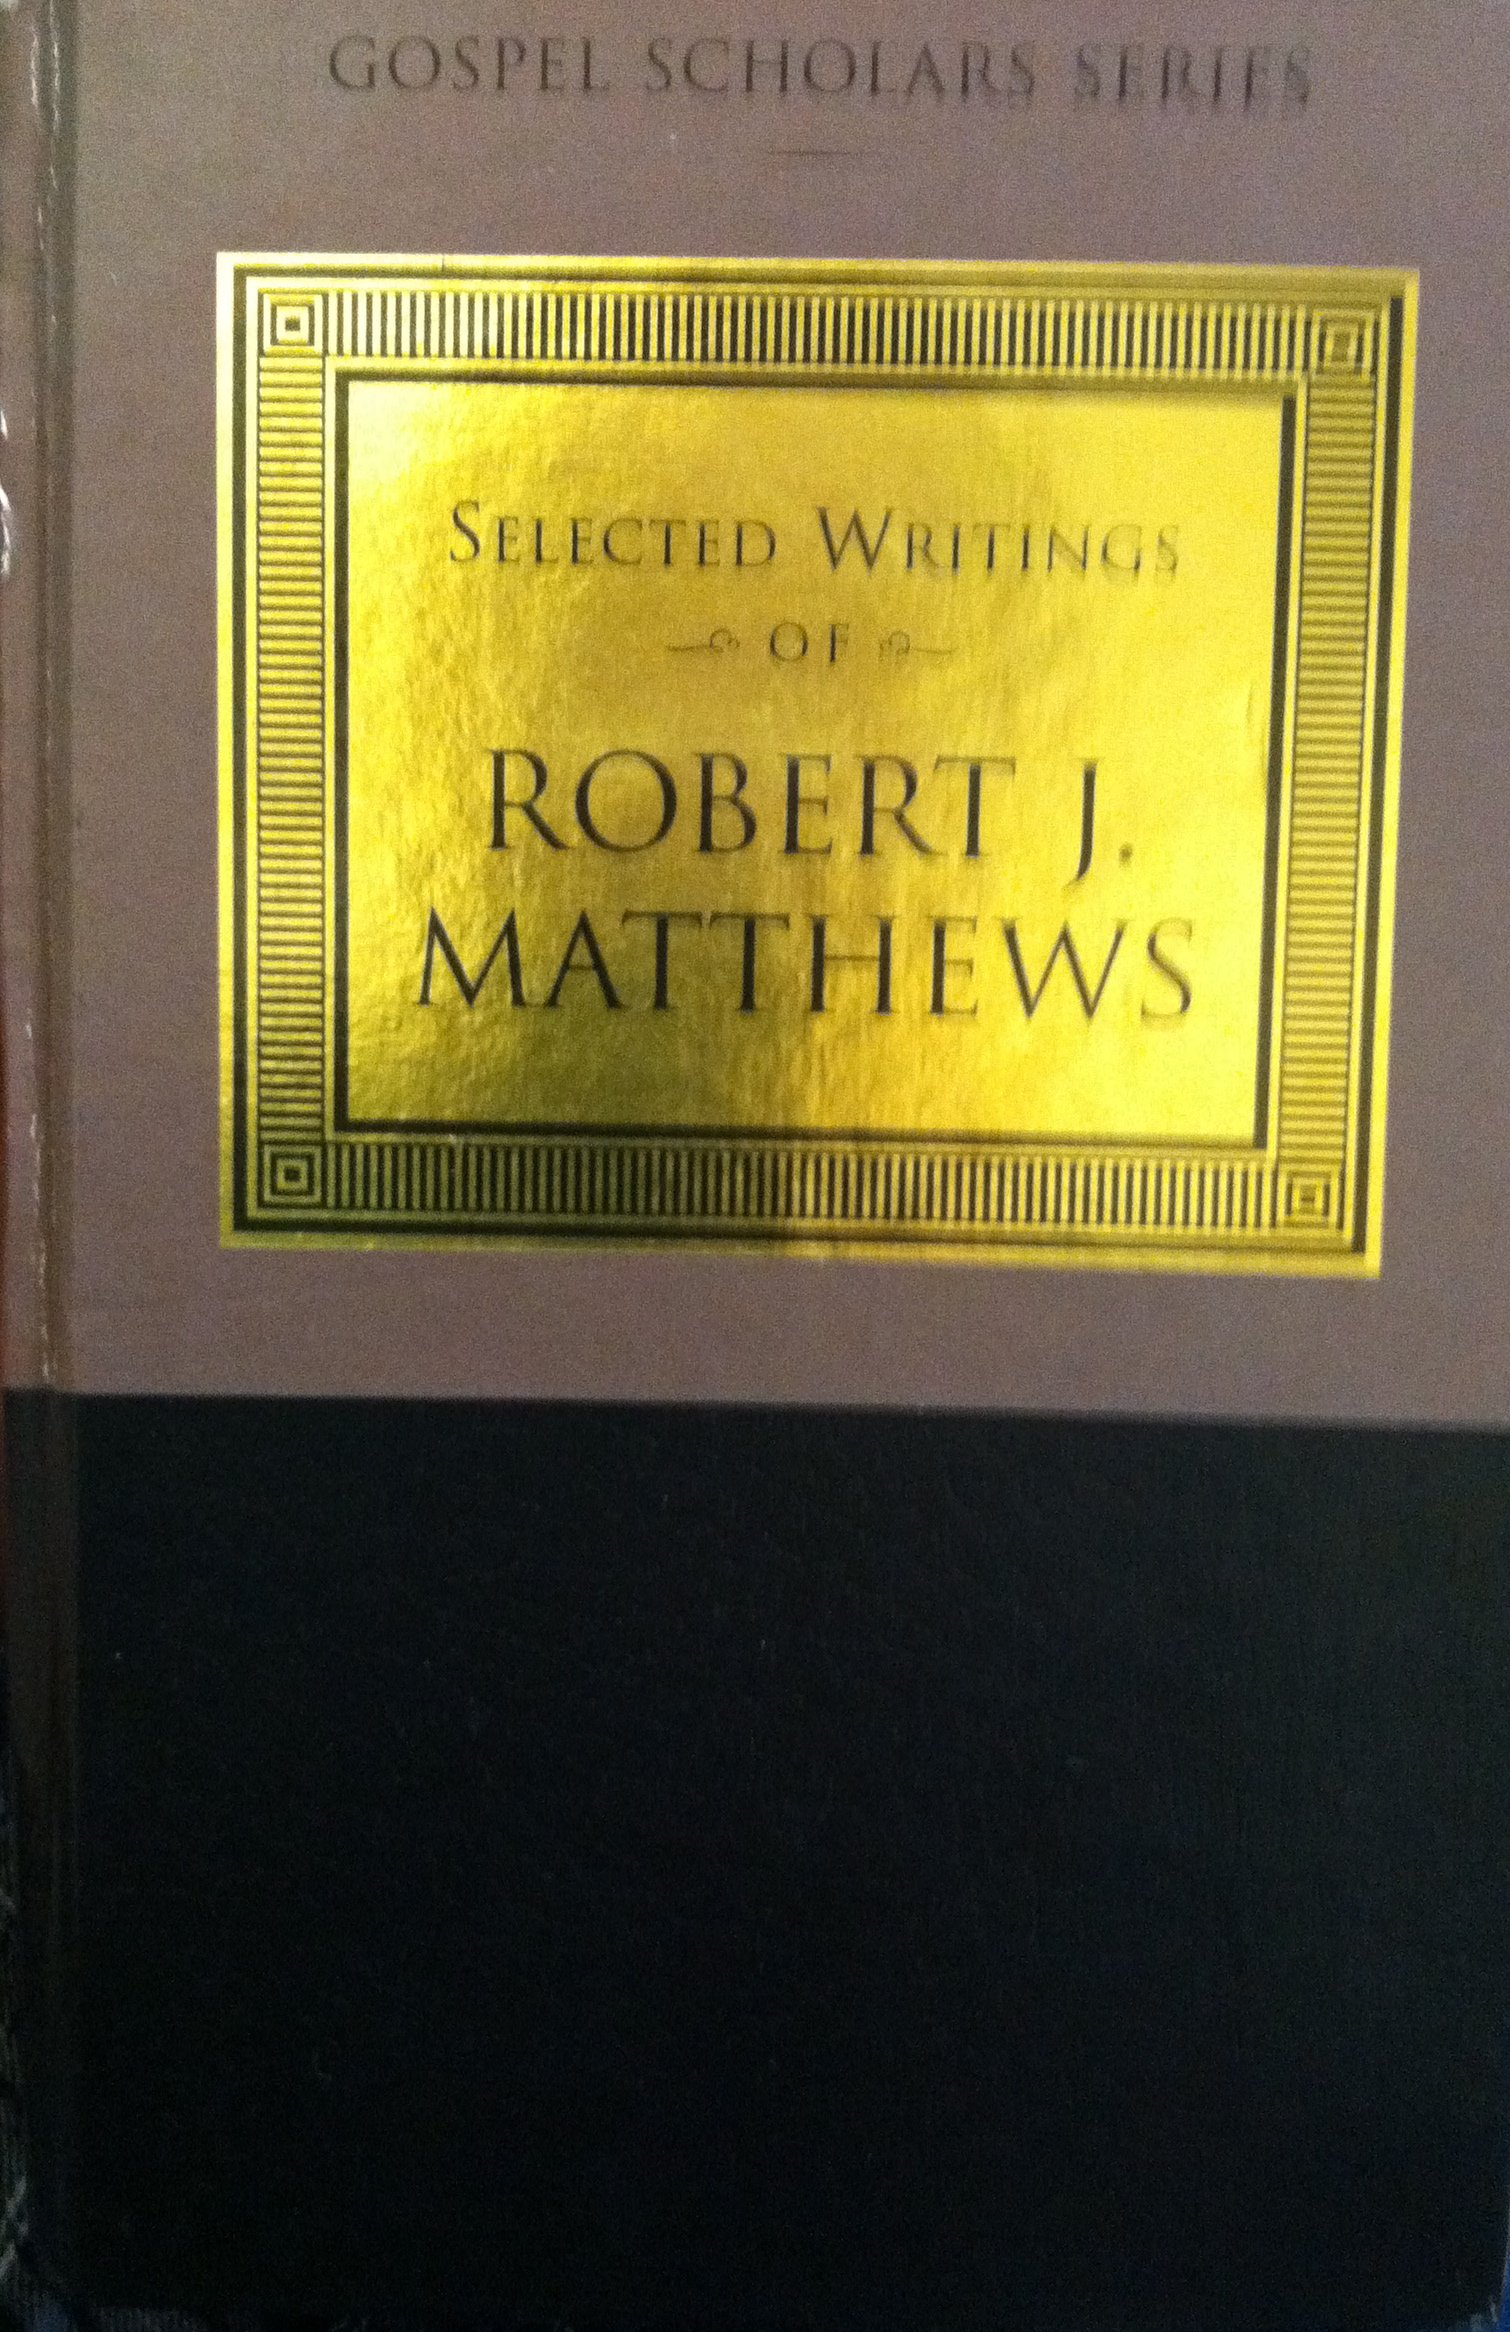 The Selected Writings of Robert J. Matthews (Gospel Scholars Series)